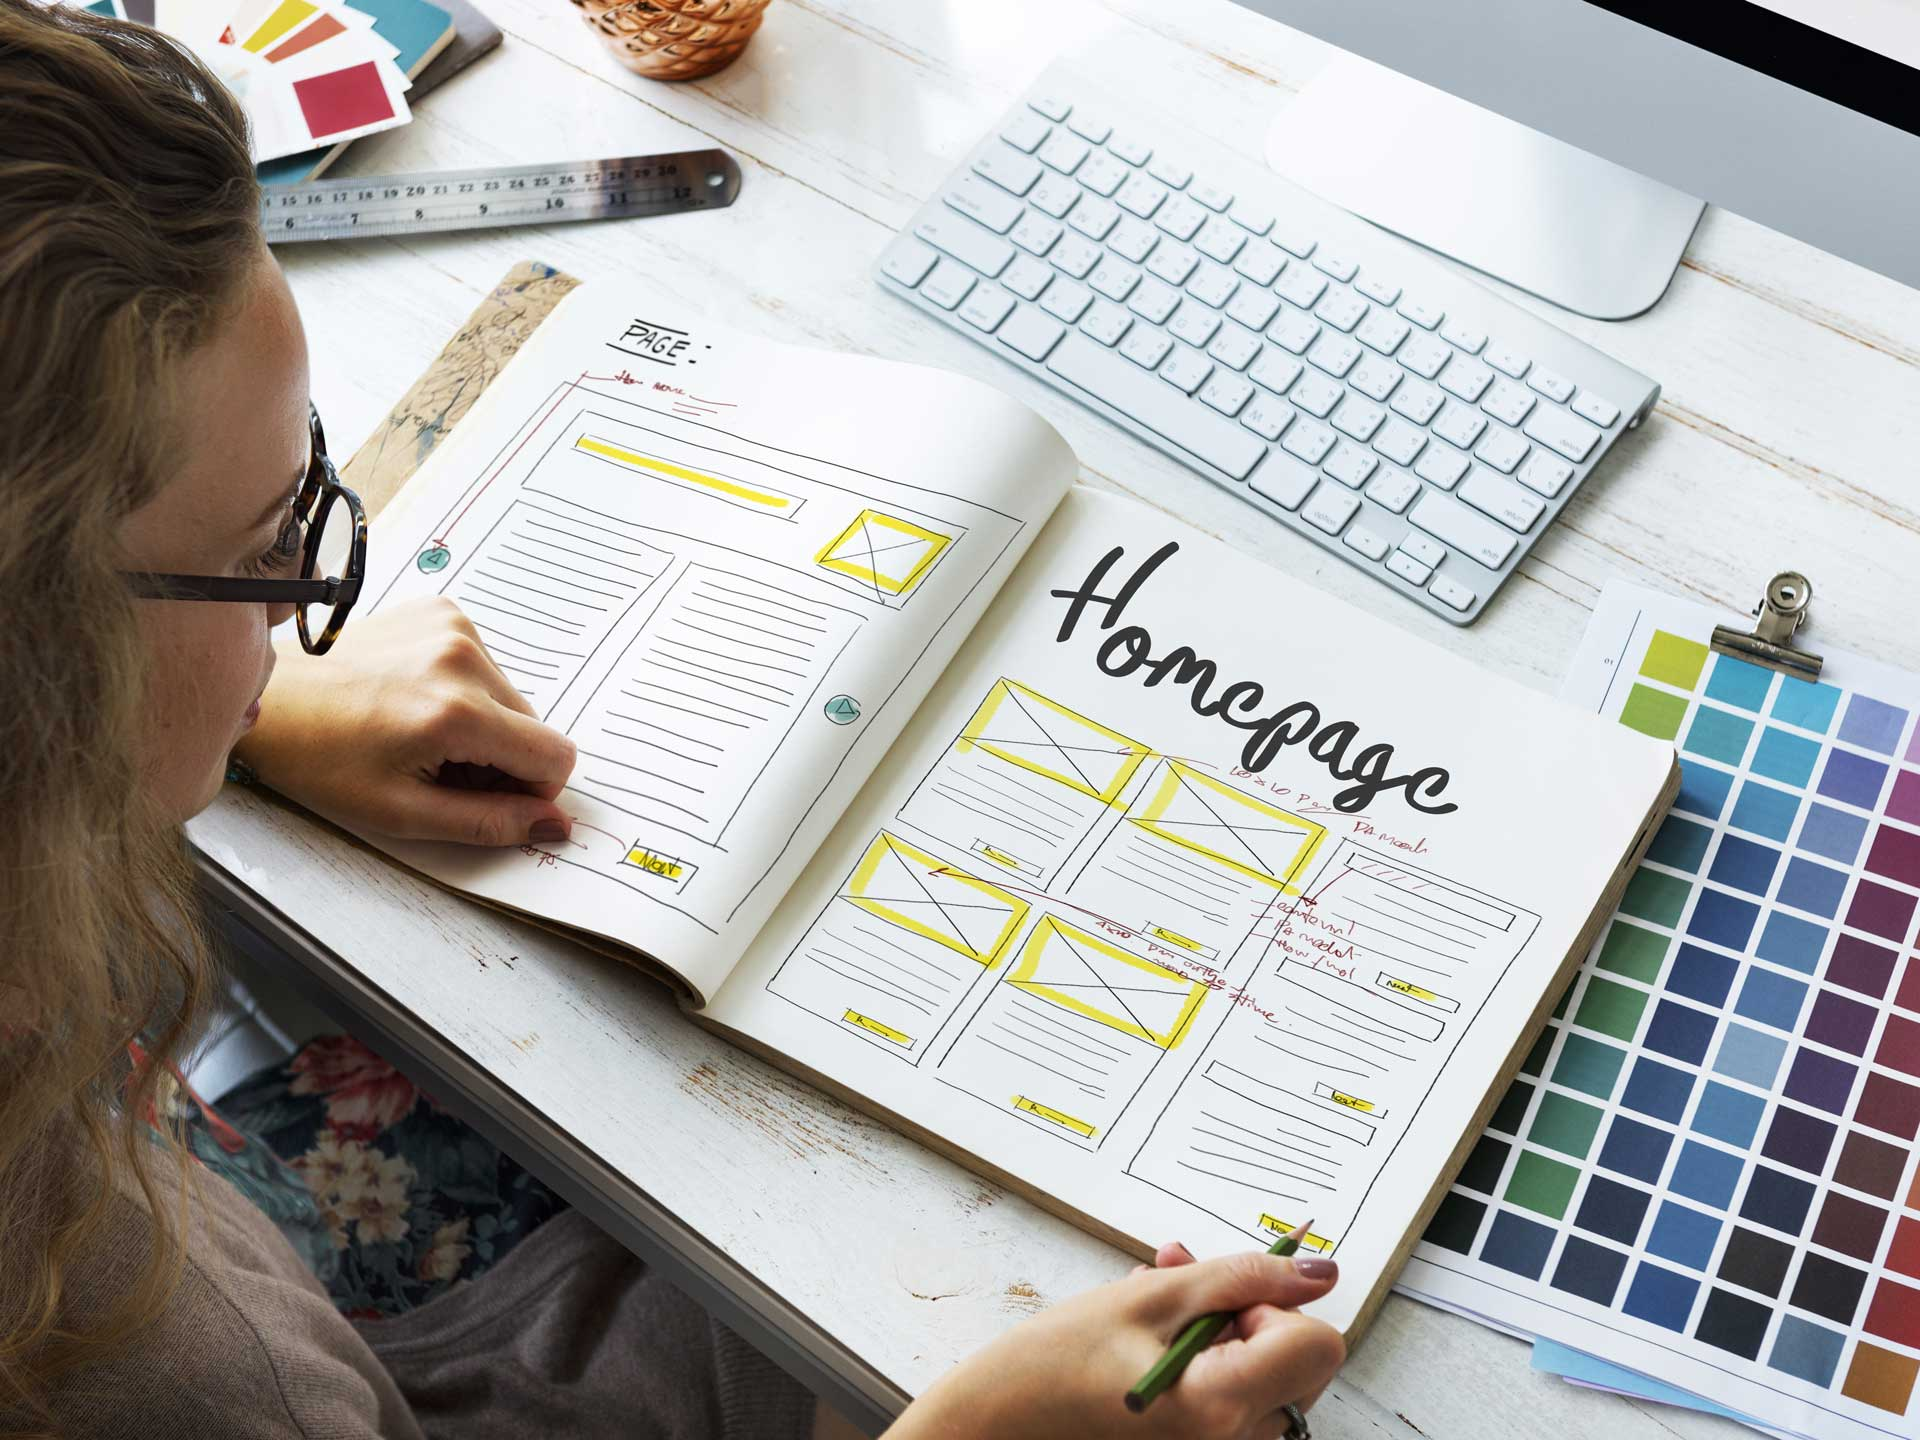 11 Crucial Elements Every Homepage Should Have